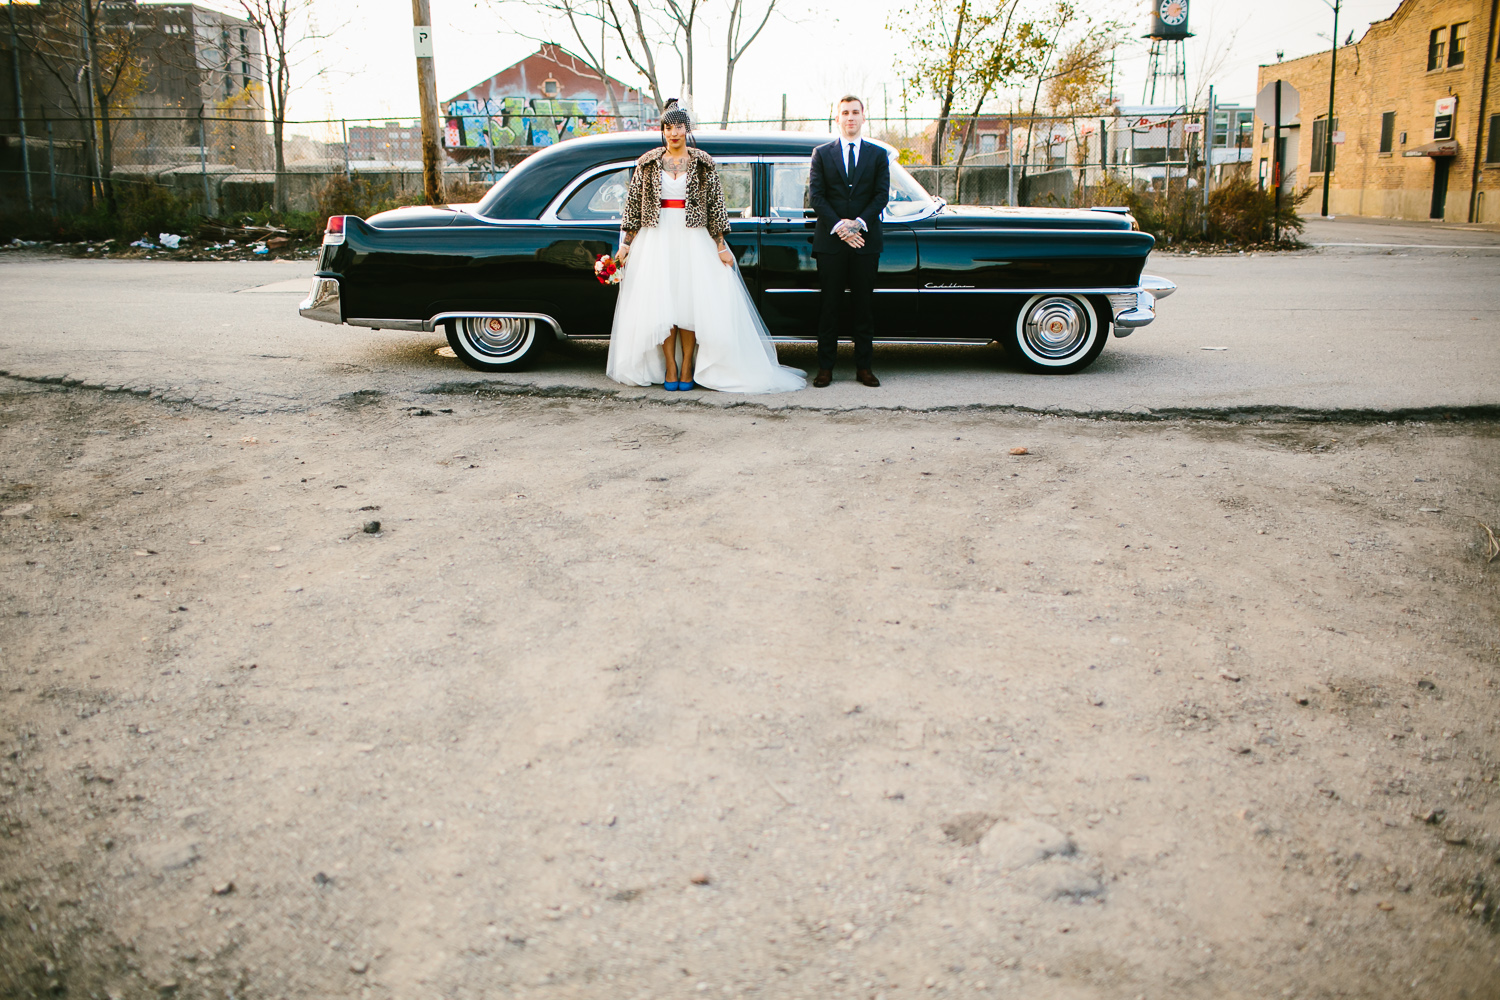 salvage-one-chicago-wedding-photos.jpg